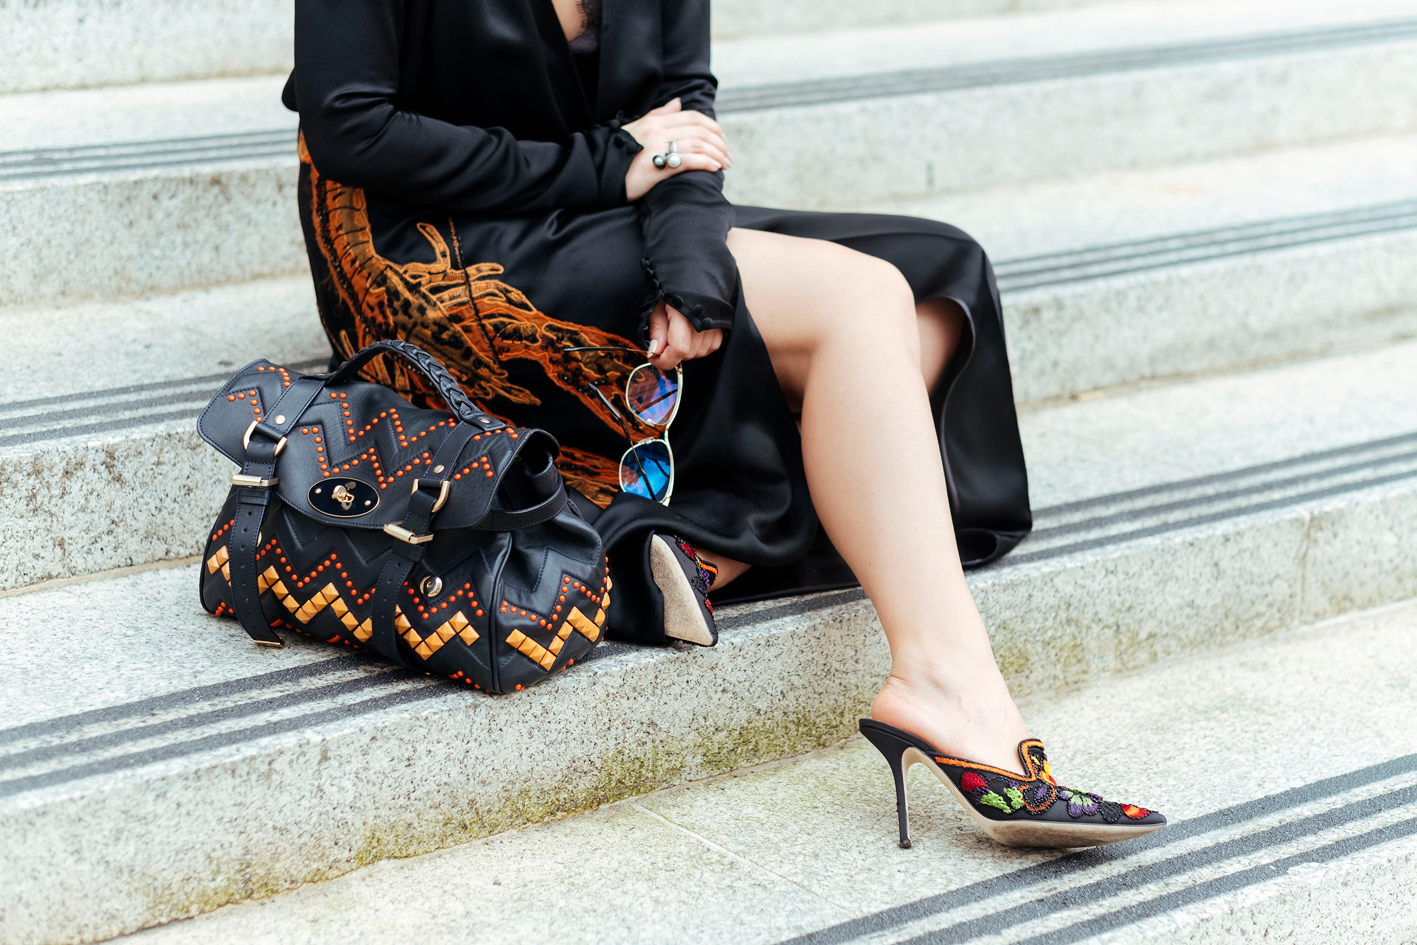 7 More Minutes. Fashion, travel and lifestyle blog by Alyona Gasimova. From Dusk Till Dawn. www.7moreminutes.com